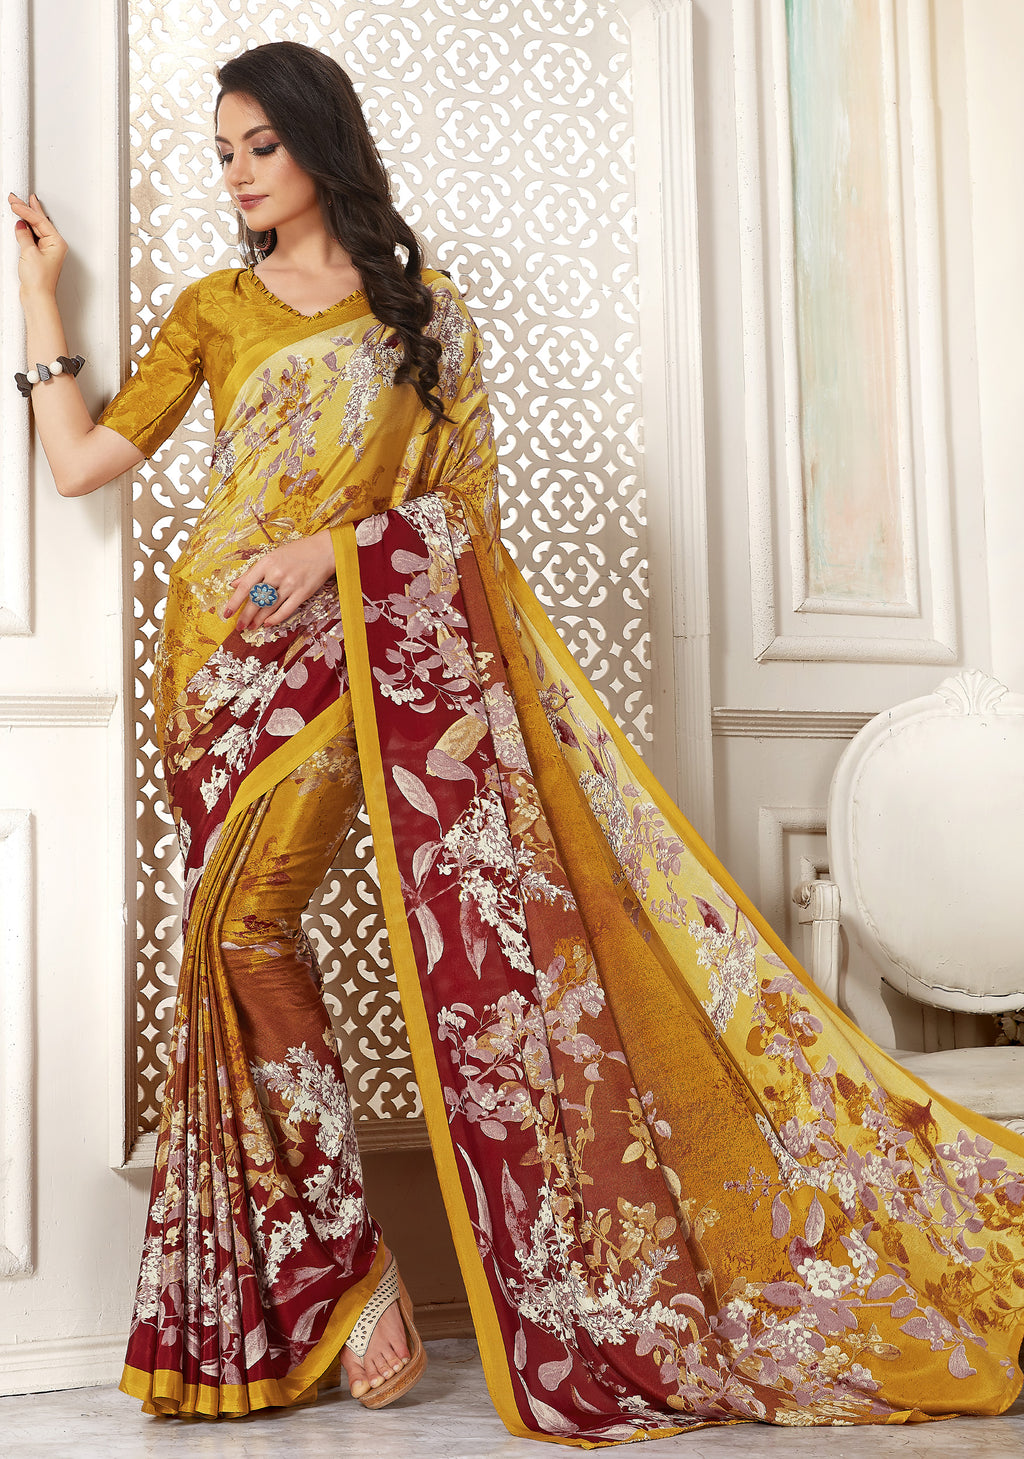 Yellow & Red Color Crepe  Digital Print Kitty Party Sarees NYF-8113